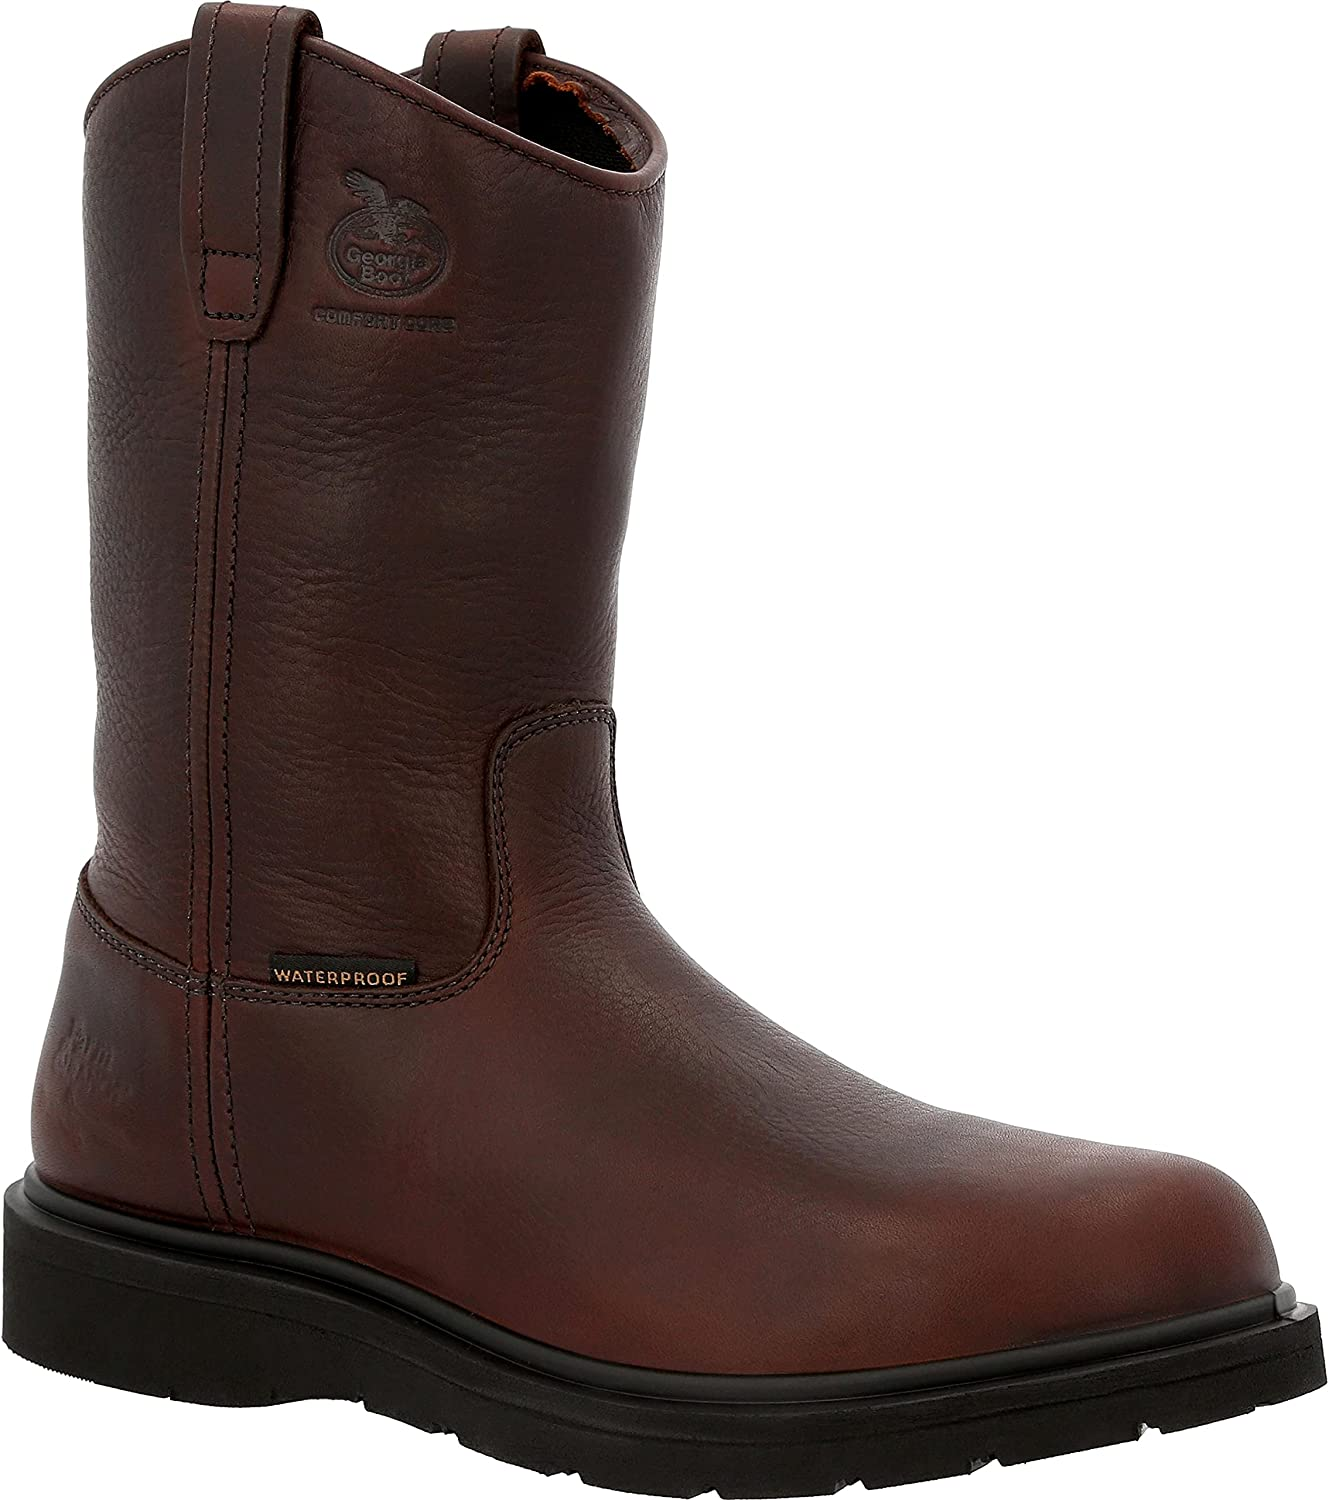 Georgia Boot Suspension Wedge 70% OFF Outlet Waterproof On Tampa Mall Pull